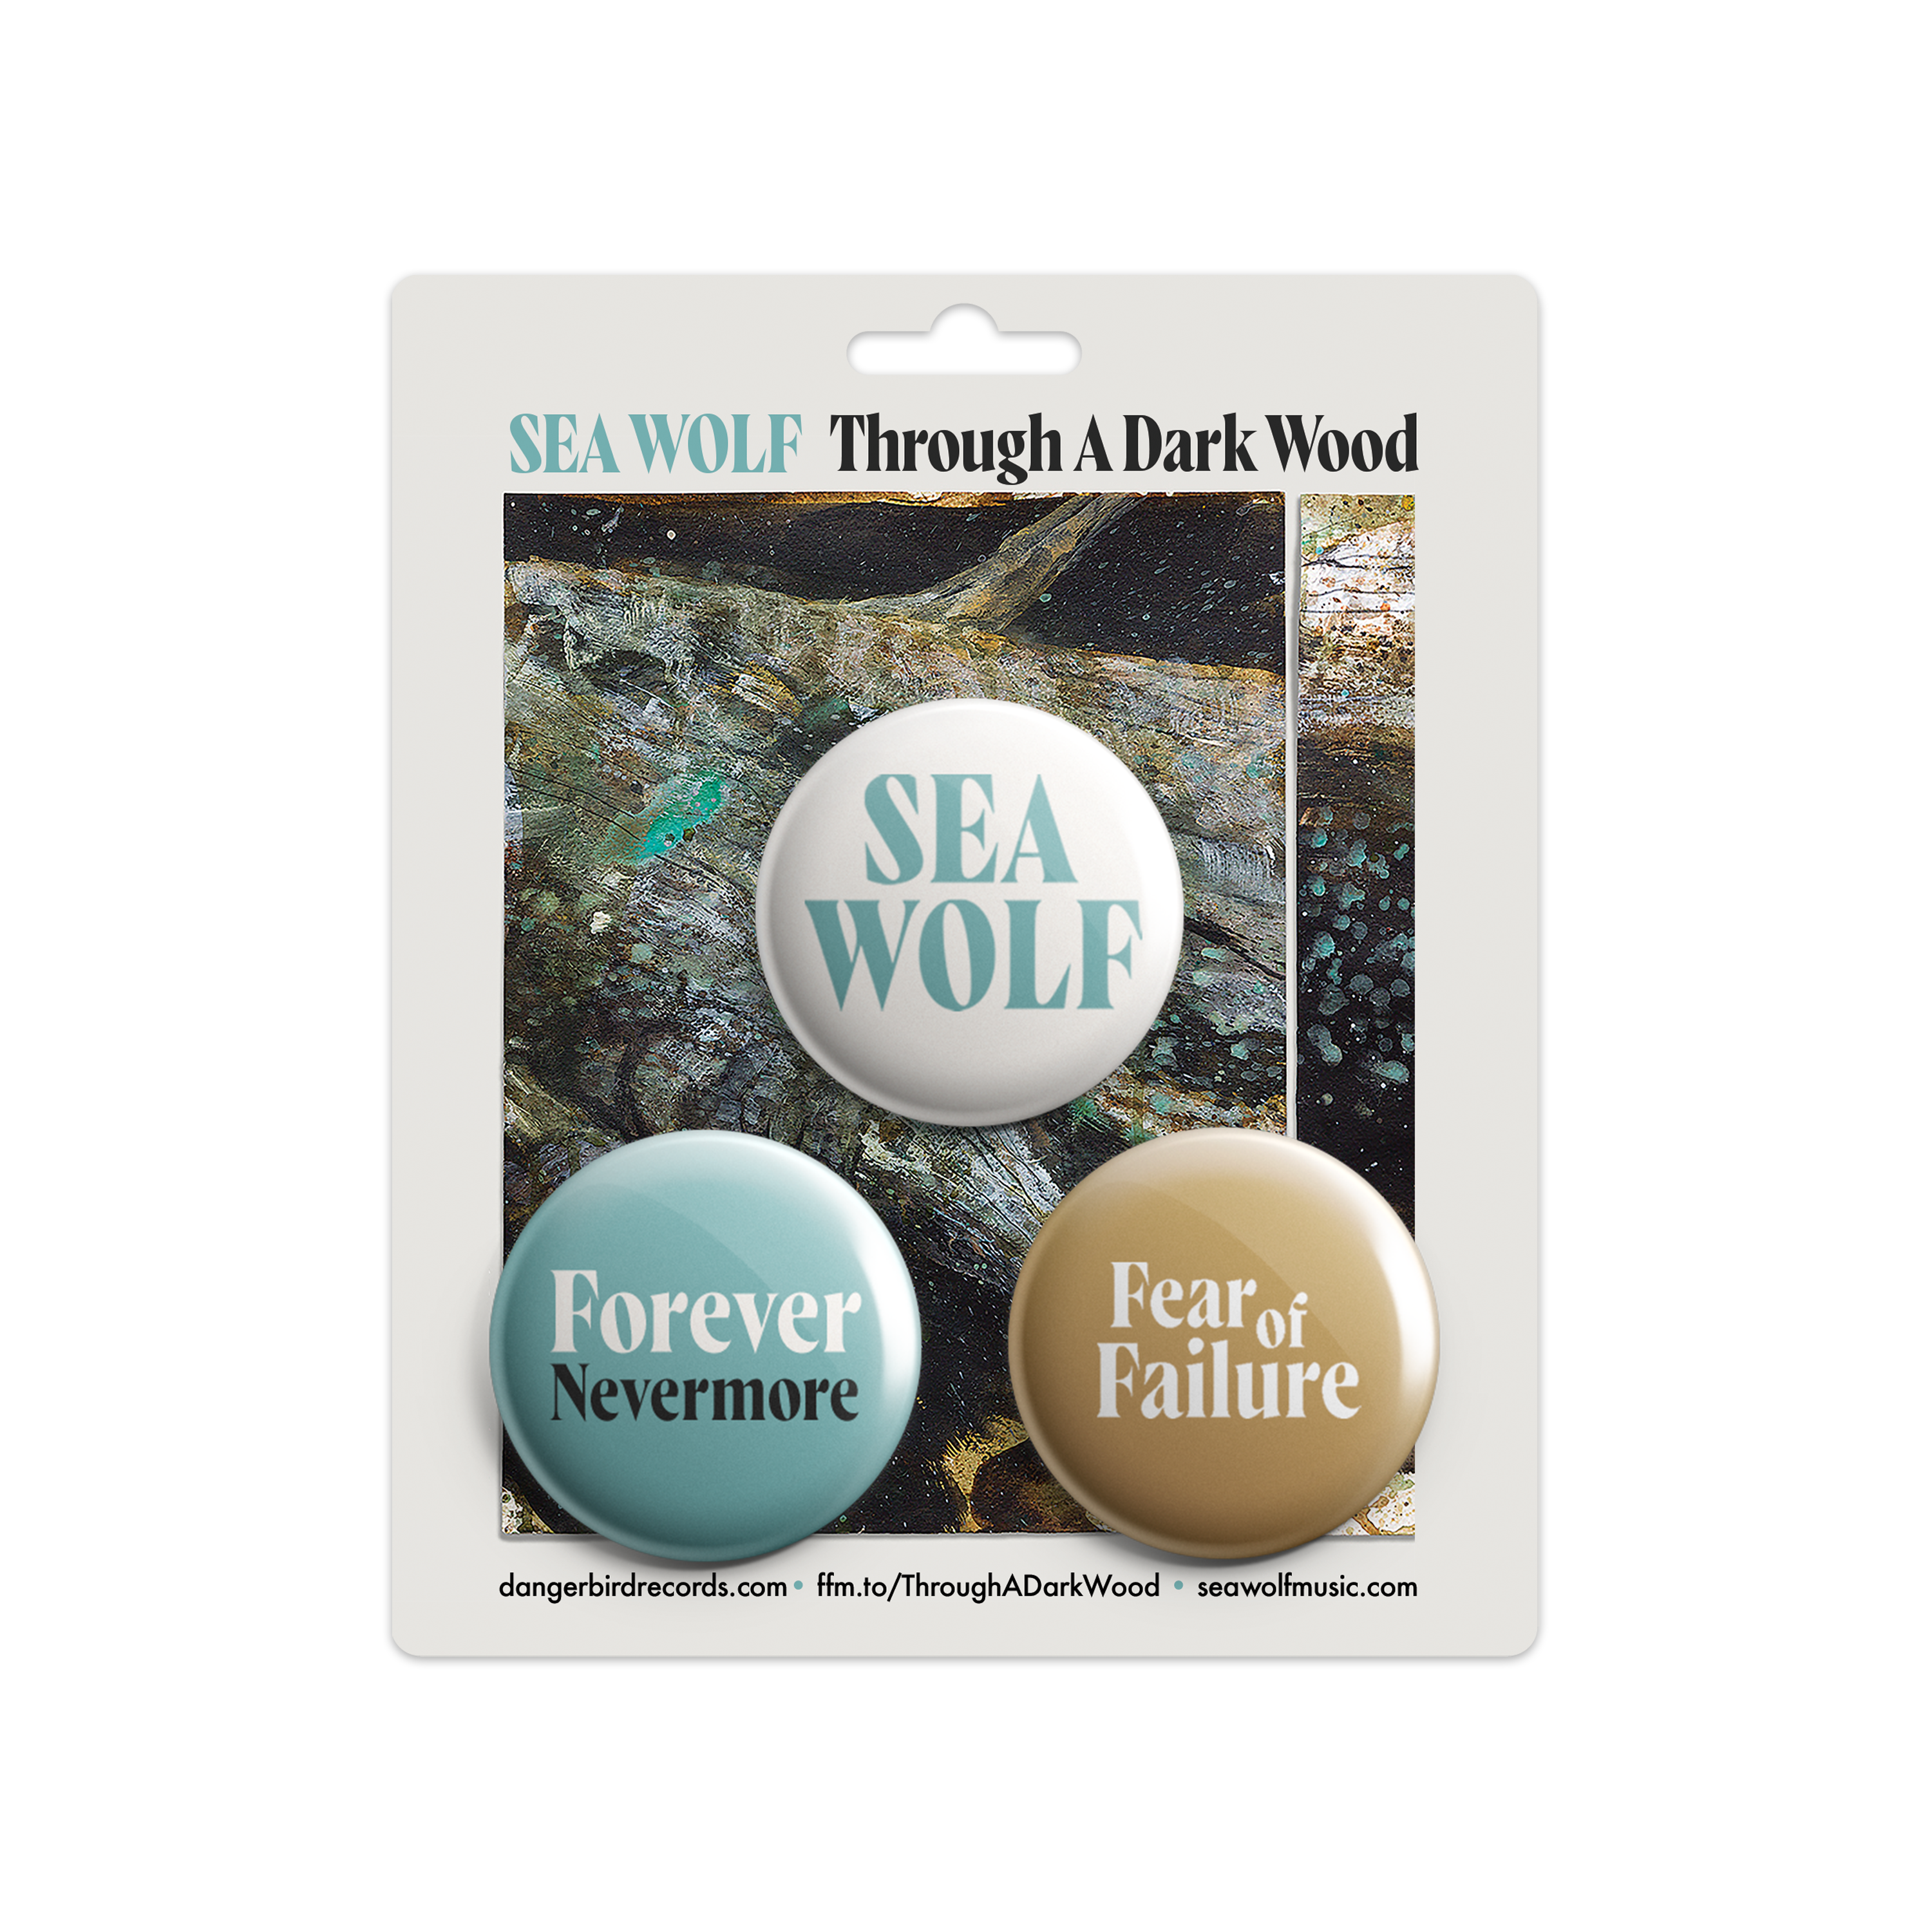 Sea Wolf - Through A Dark Wood - CD + Shirt + Buttons Bundle